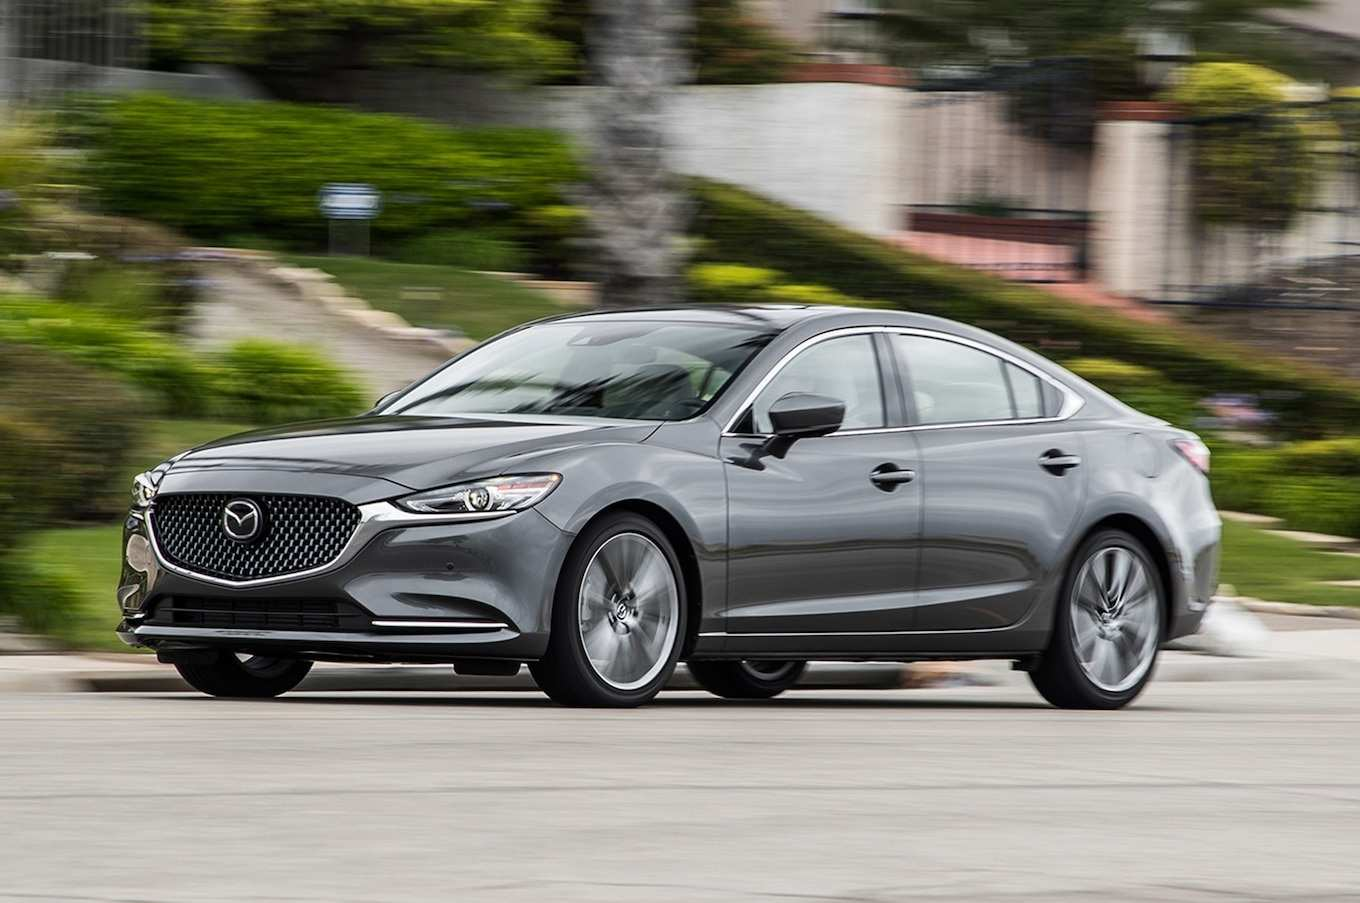 90 The Best 2019 Mazda 6 Coupe Pricing